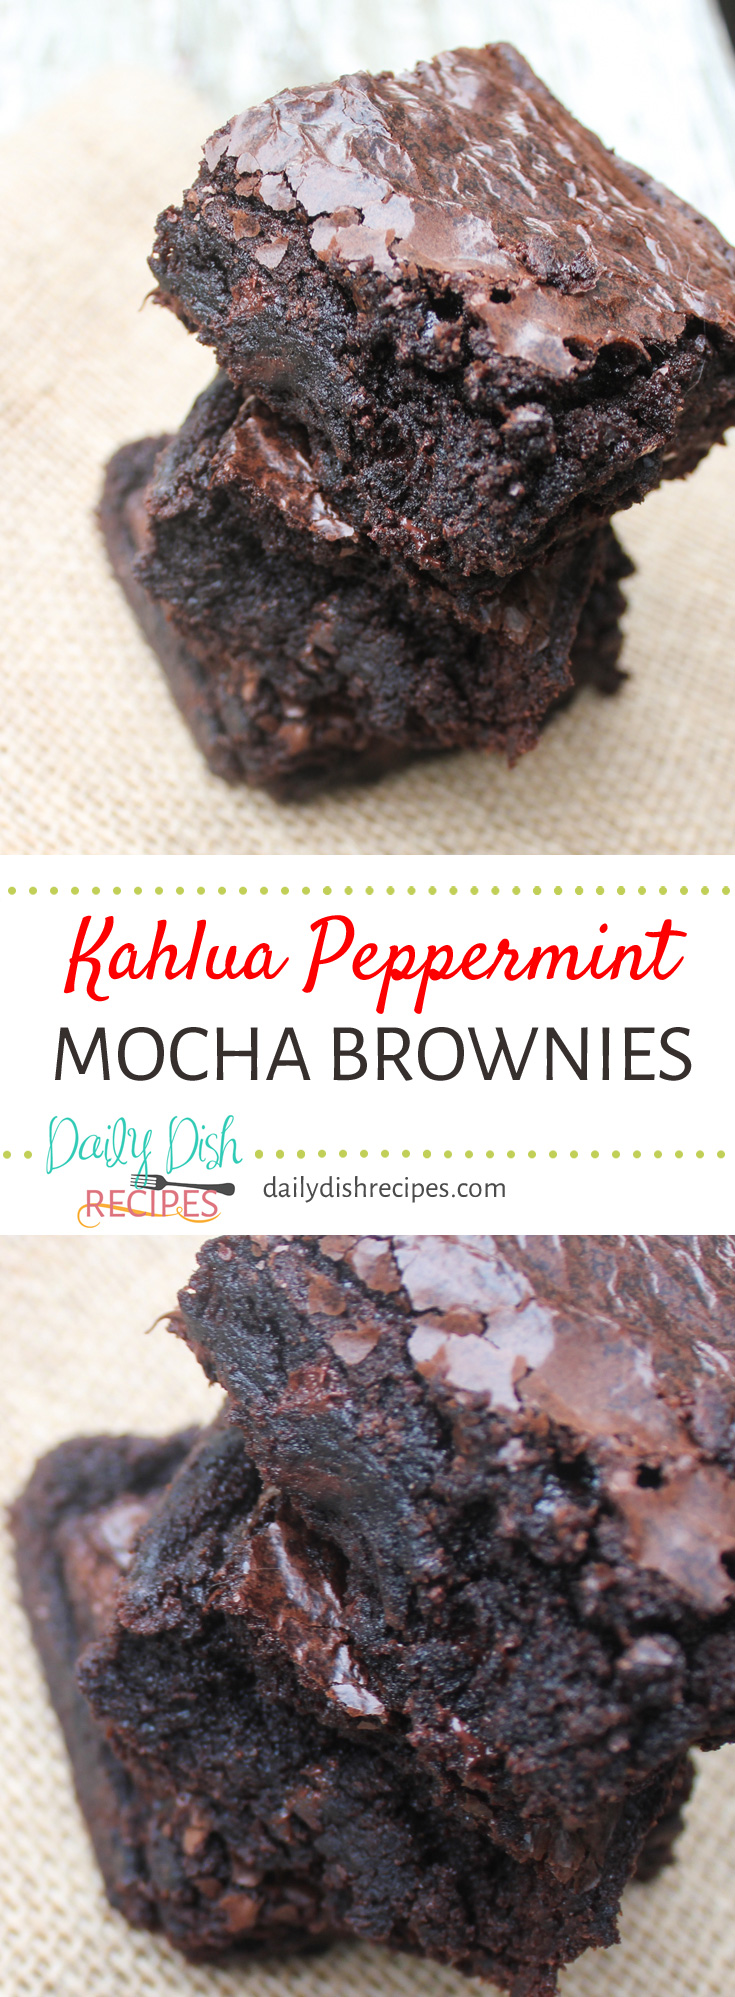 Soft, moist, chocolaty Kahlua Peppermint Mocha Brownies are the perfect treat on a cold winter night when you're wanting a cozy recipe!